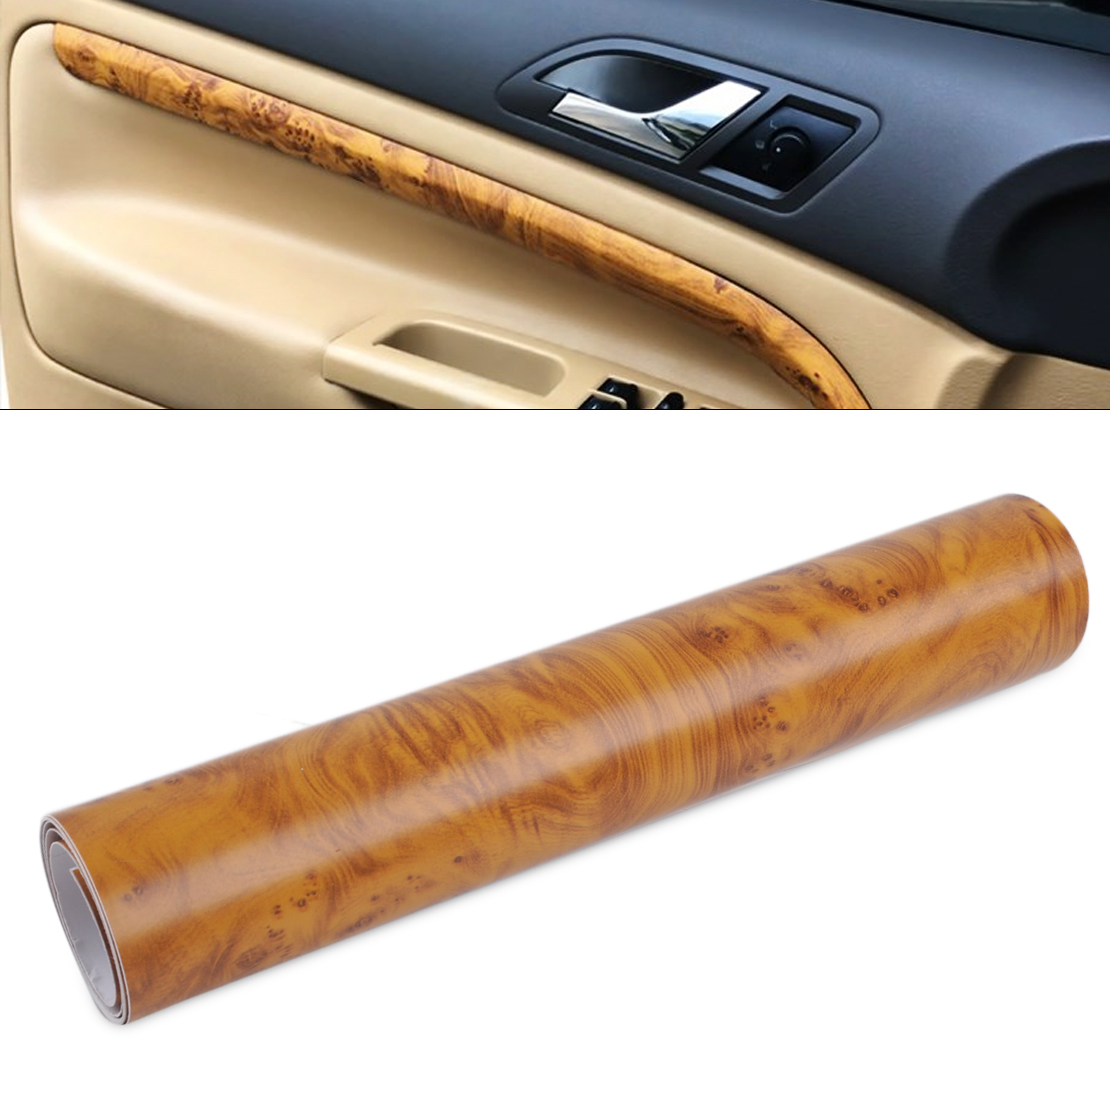 DWCX New Car Styling Birds Eye Wood Grain Textured Sticker Decal Sheet Film Wrap Roll Car Decoration 100 x 30cm fit for all car